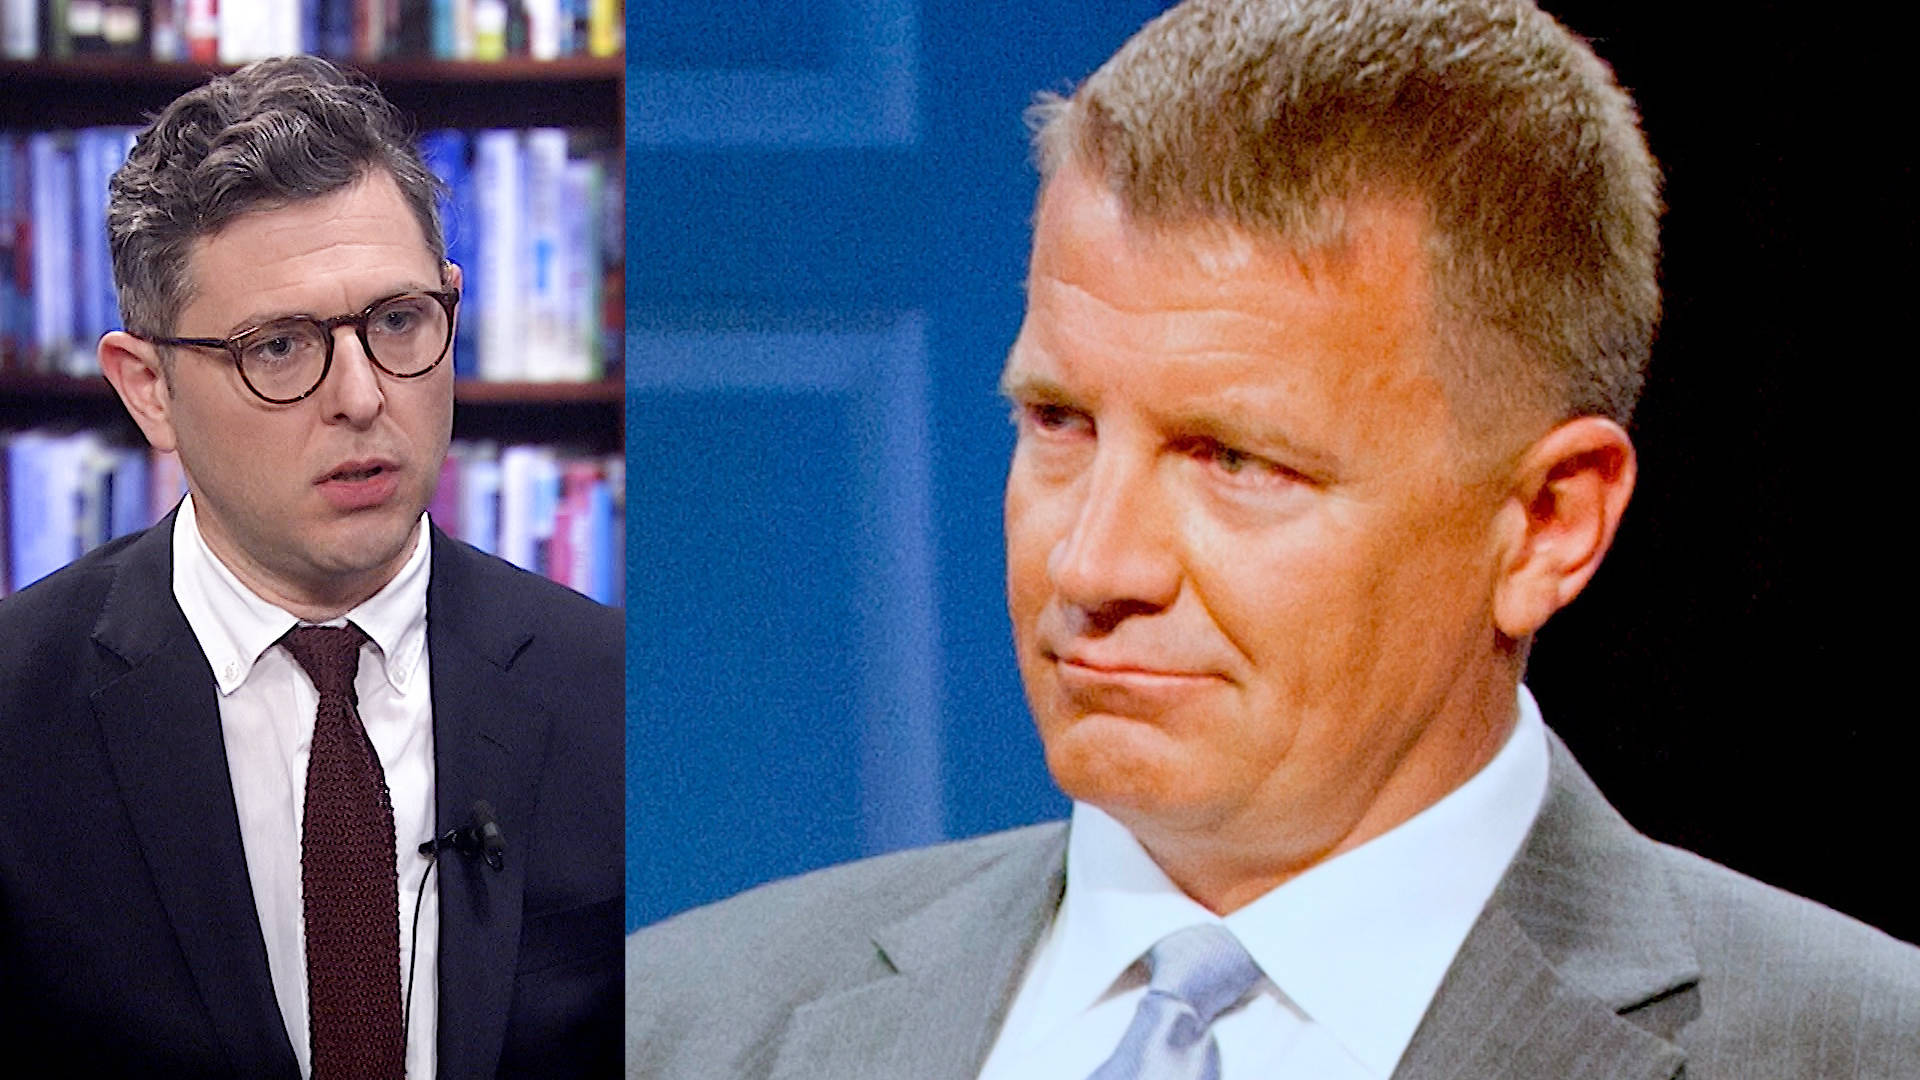 War Contractor Erik Prince Has Close Ties to White House & Report Reveals His Dirty Tricks for Trump